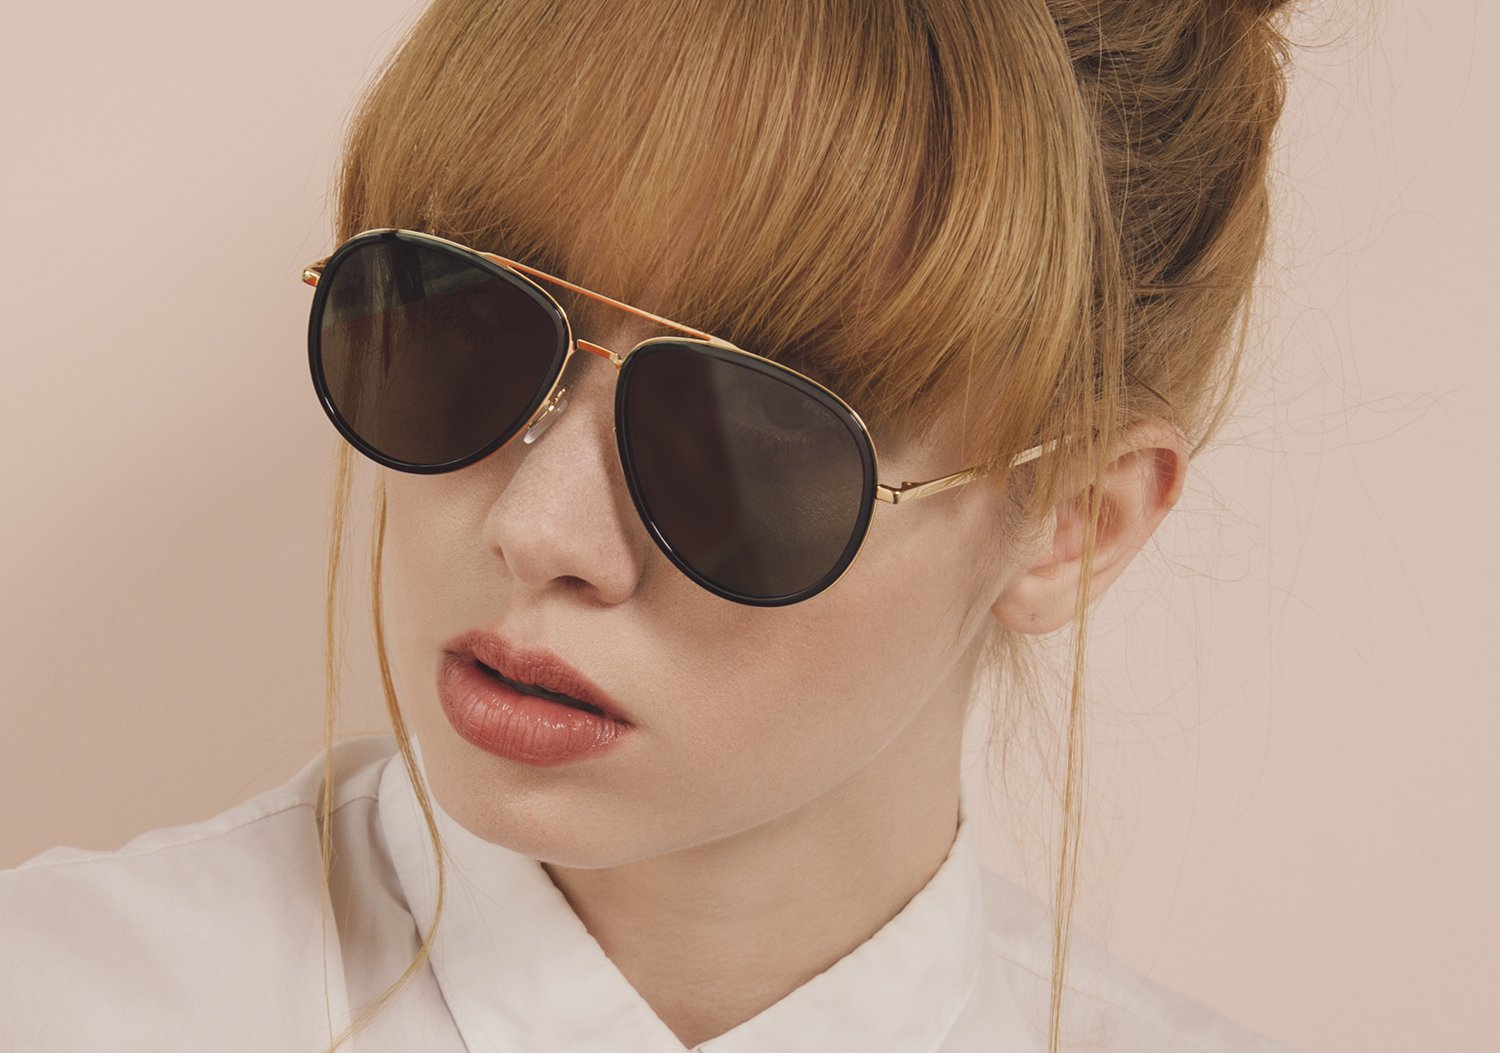 Sunny's Aviators - LoveEmme, Product_Type, Product_Vendor